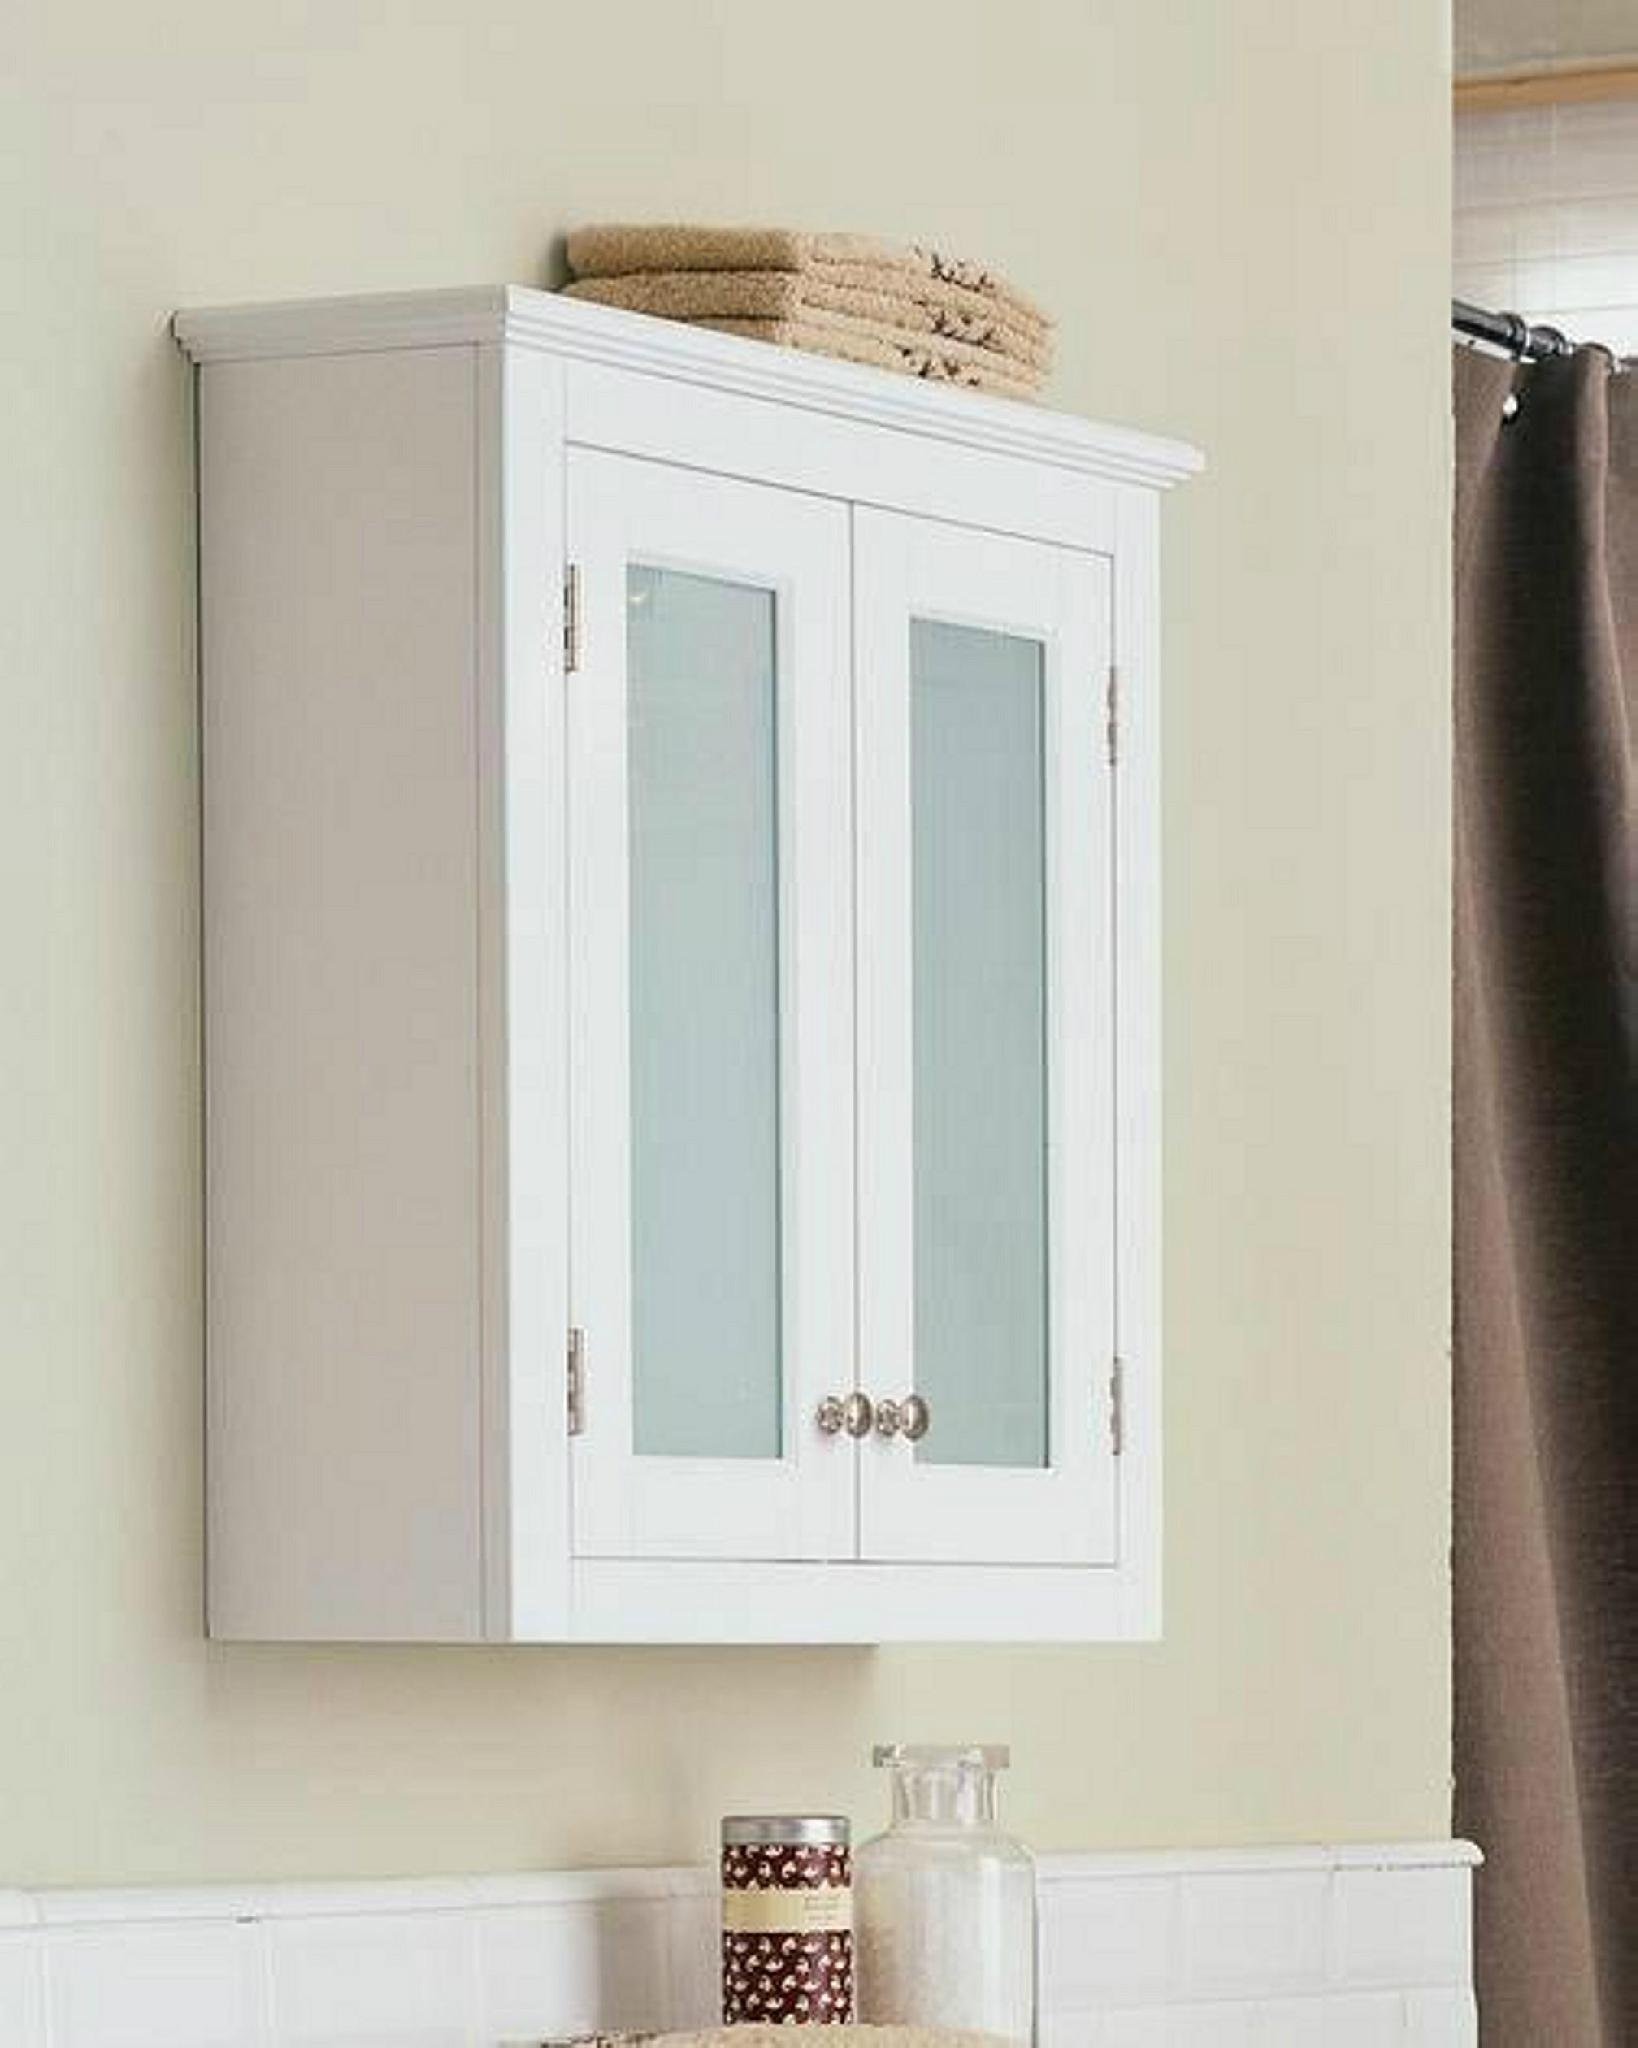 Small White Wall Medicine Cabinet Over The Toilet Storage